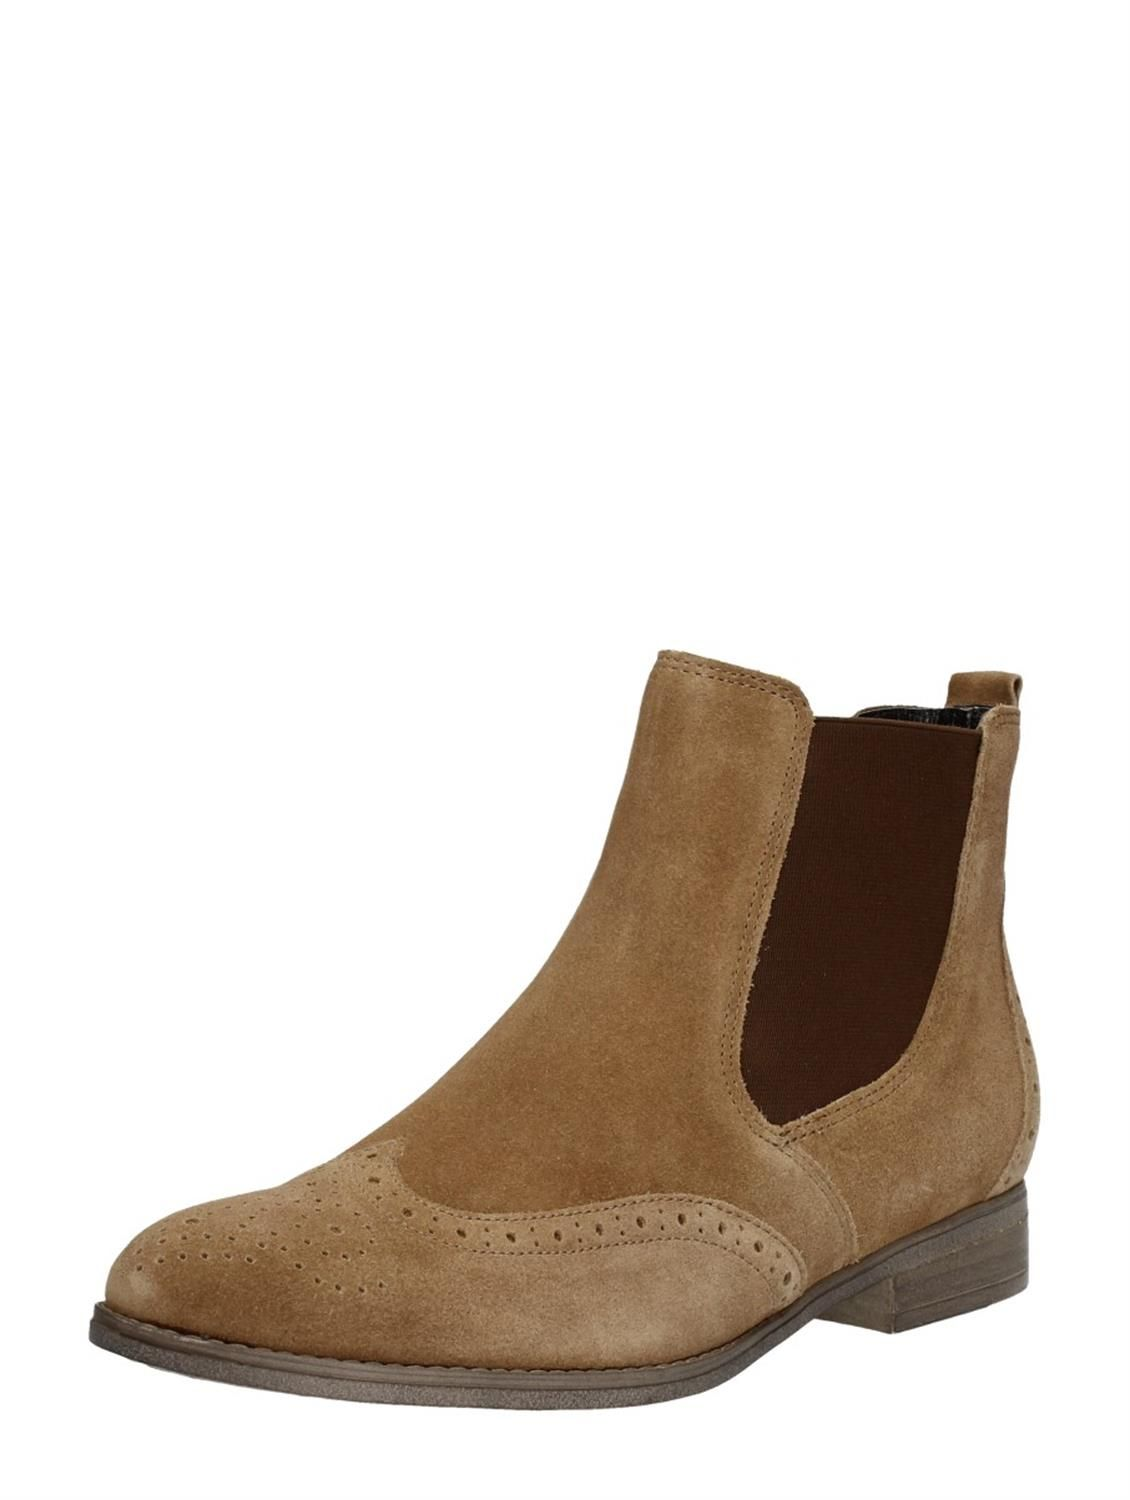 Gabor Zodiac Womens Chelsea Boots Women's Mid Boots In Brown